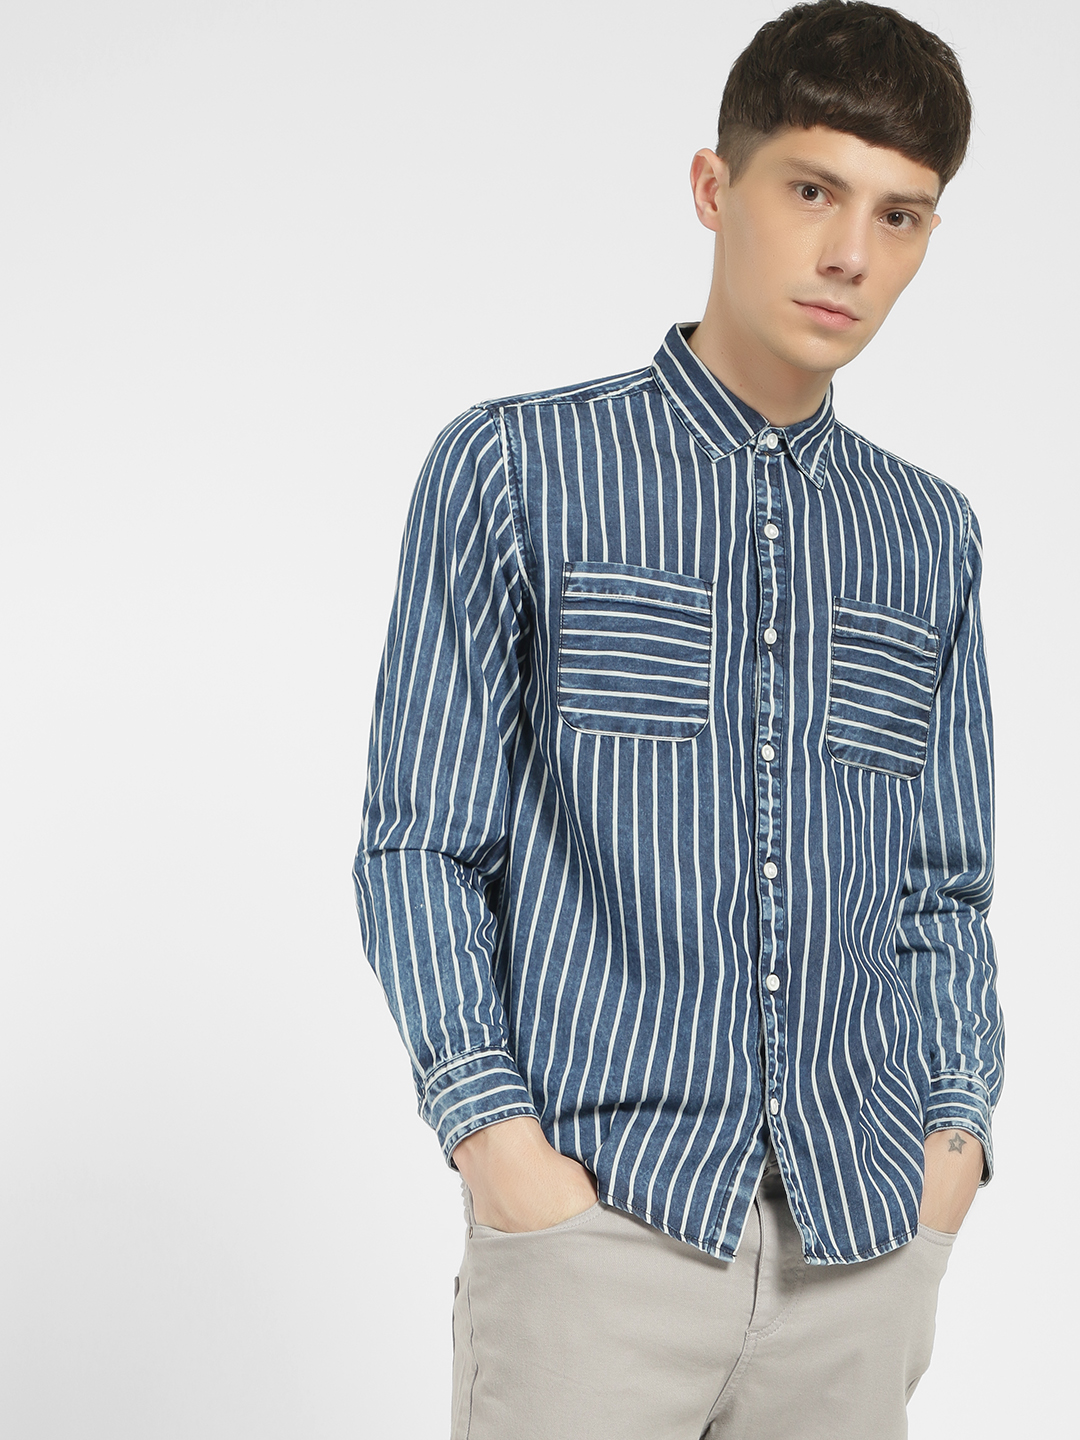 Styx & Stones Blue Vertical Stripe Washed Denim Shirt 1